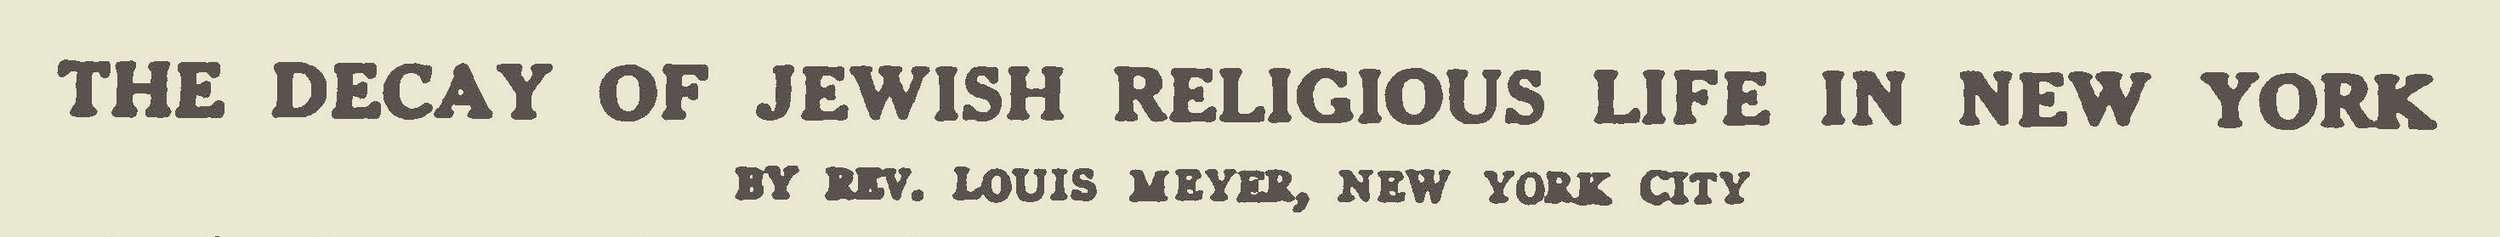 Meyer, Louis, The Decay of Jewish Religious Life in New York Title Page.jpg